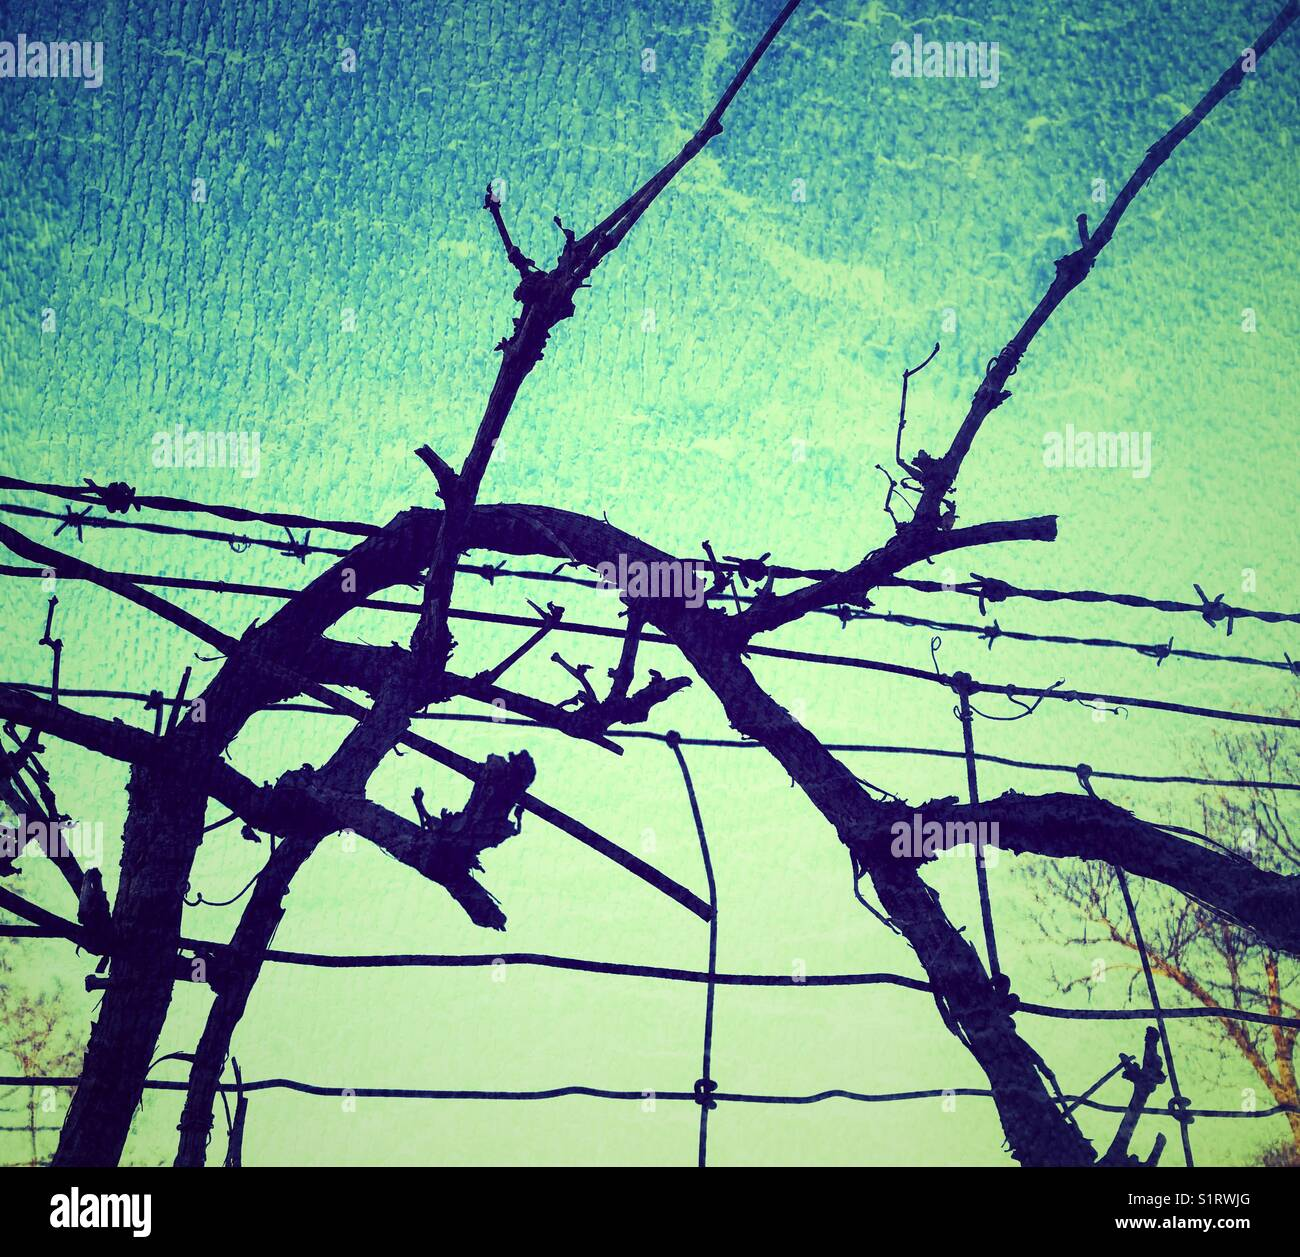 Vinyl branches twisting over barbed wire fence at dusk - Stock Image